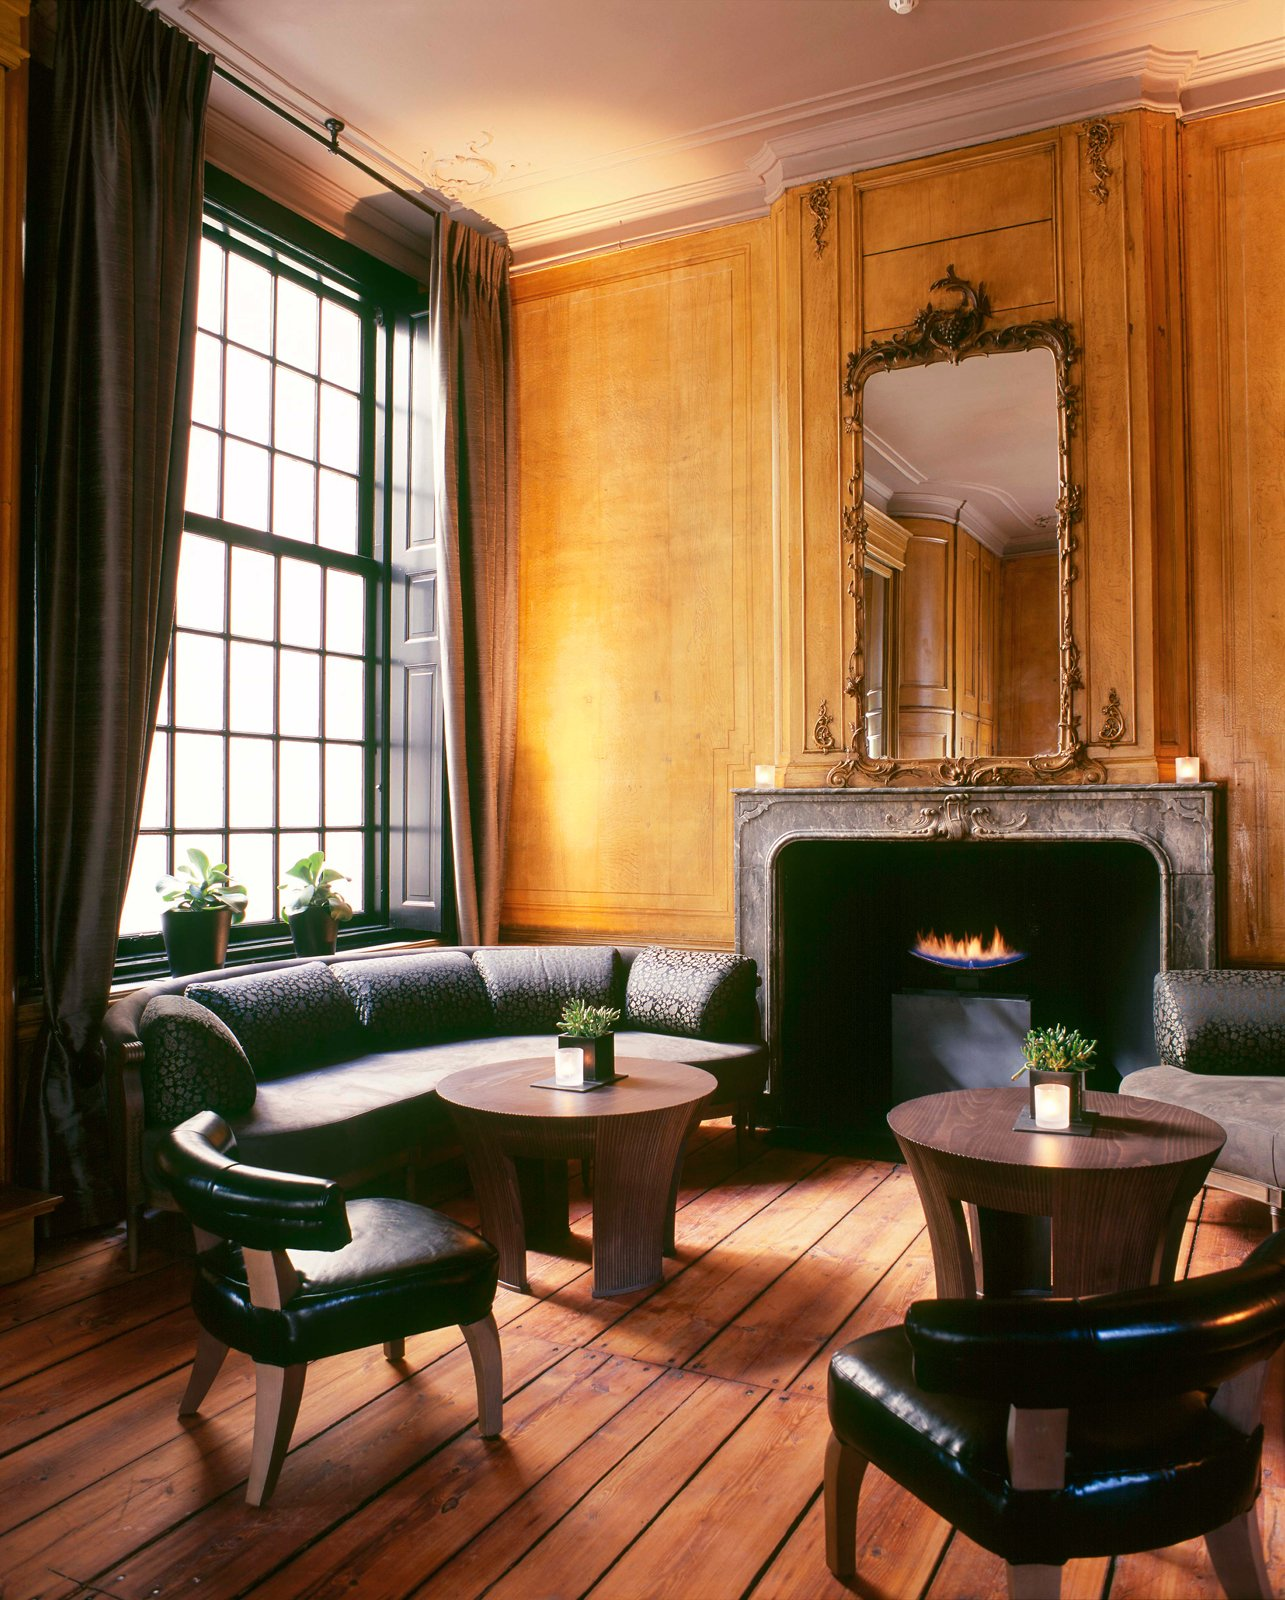 This was my favorite single space in the hotel—a lounge with a big marble fireplace, gilt mirror, and weathered wooden floor boards.  The Dylan, Amsterdam by Jaime Gillin